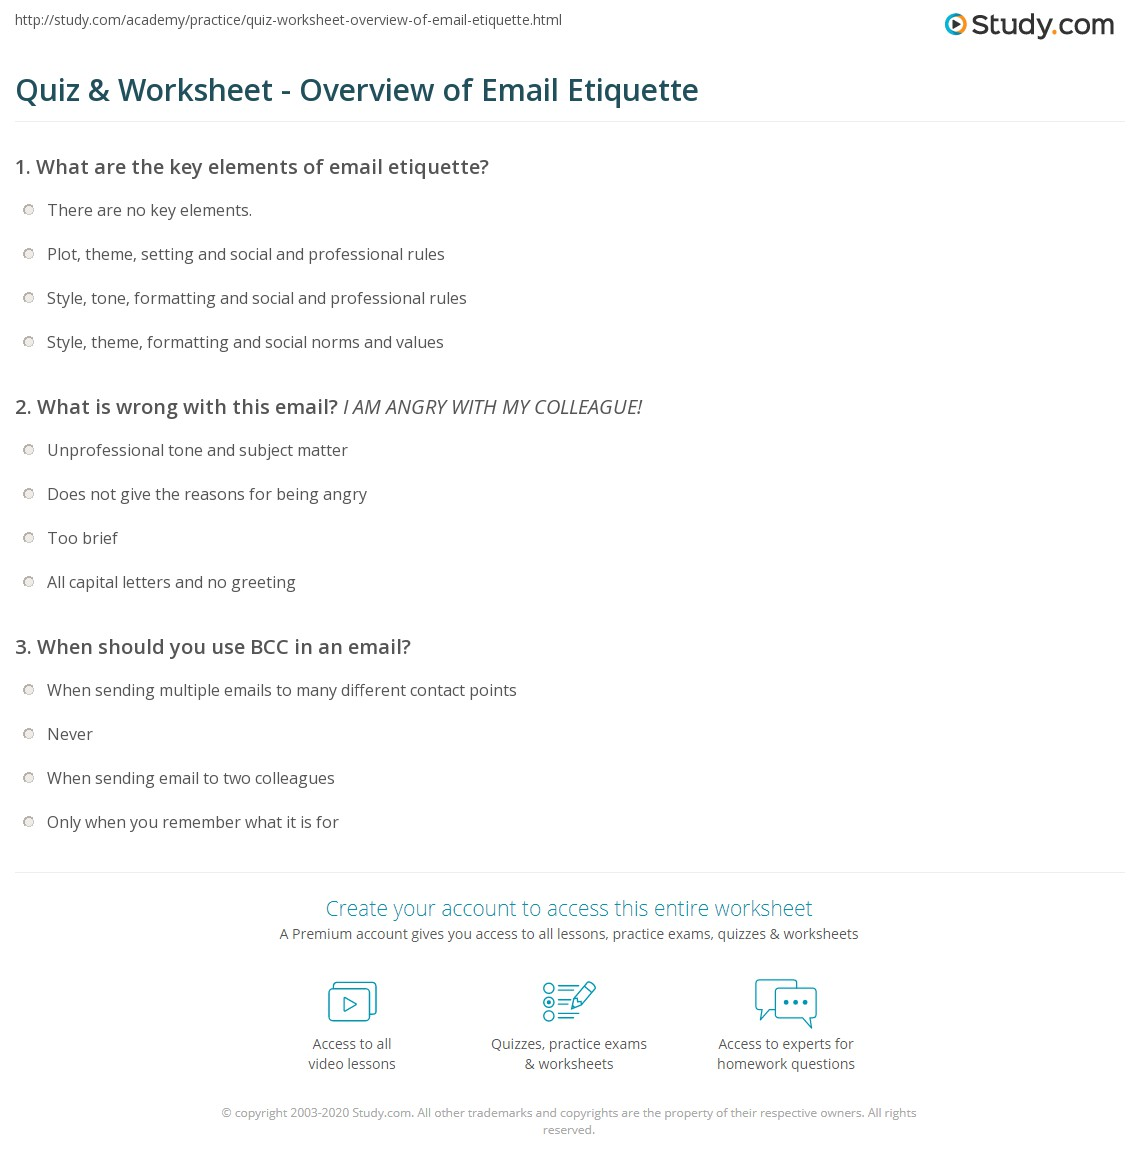 Quiz & Worksheet - Overview of Email Etiquette | Study.com